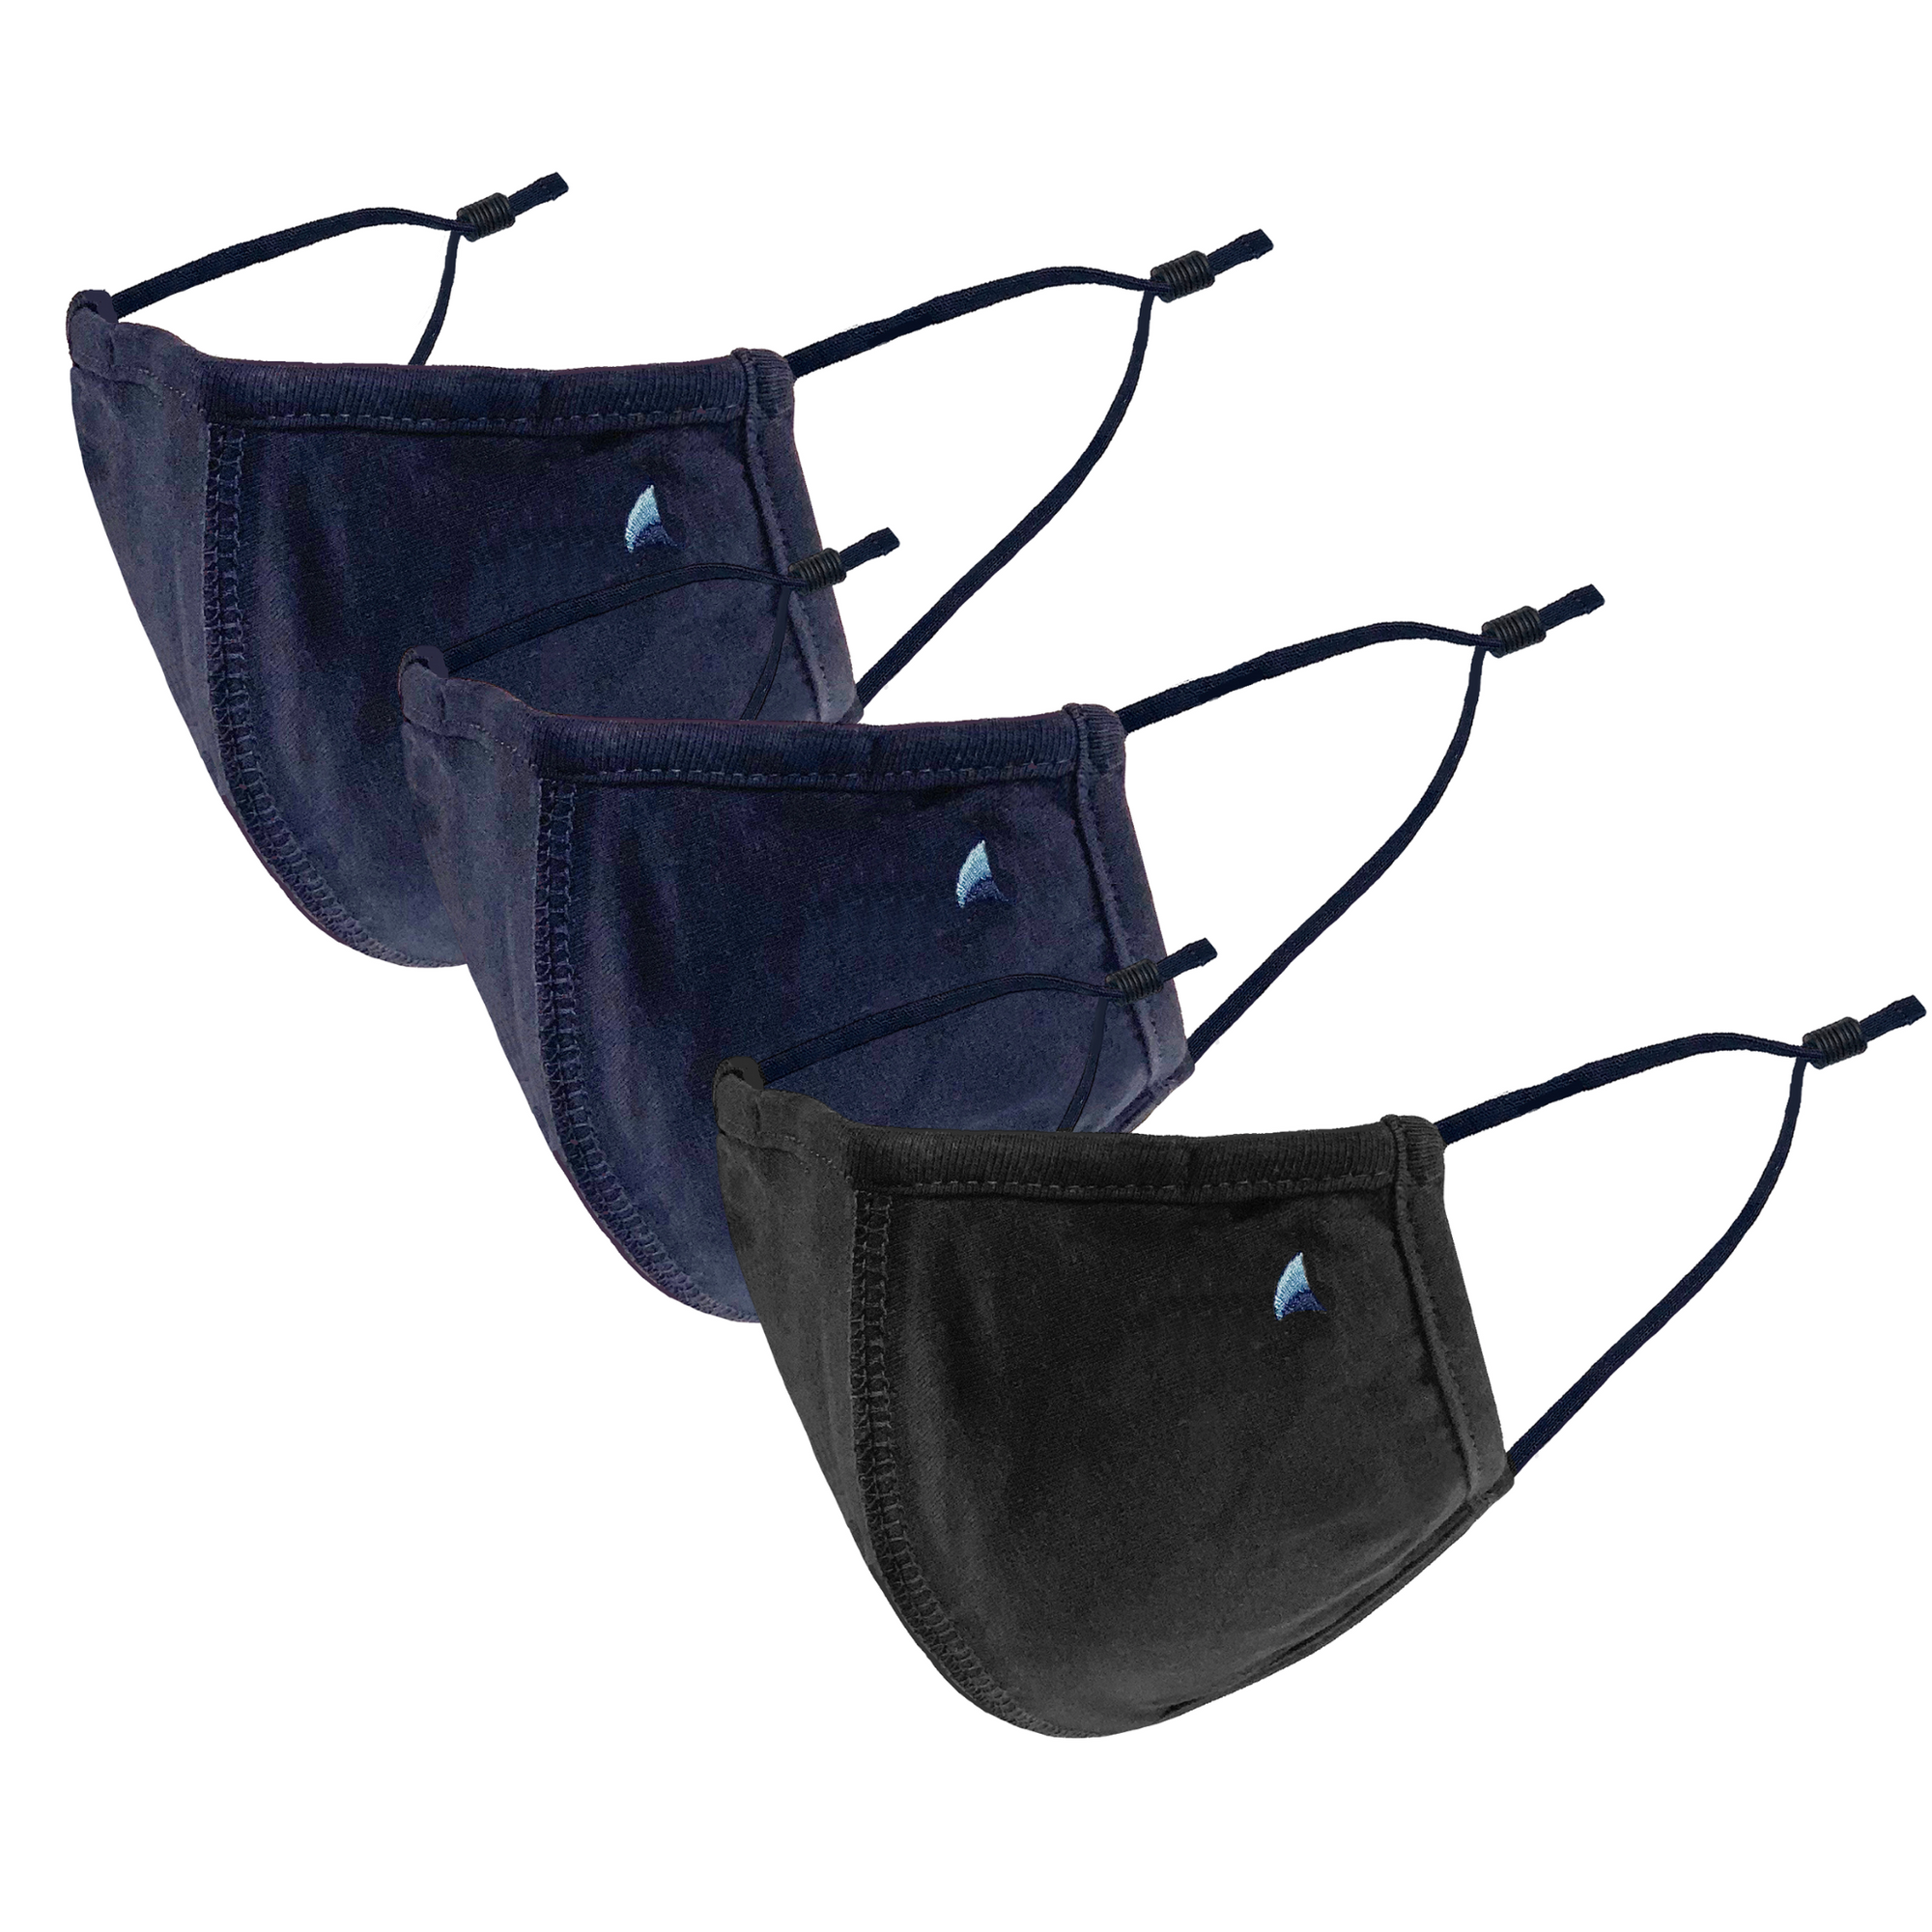 2 Puretec Masks in Navy and 1 in Black